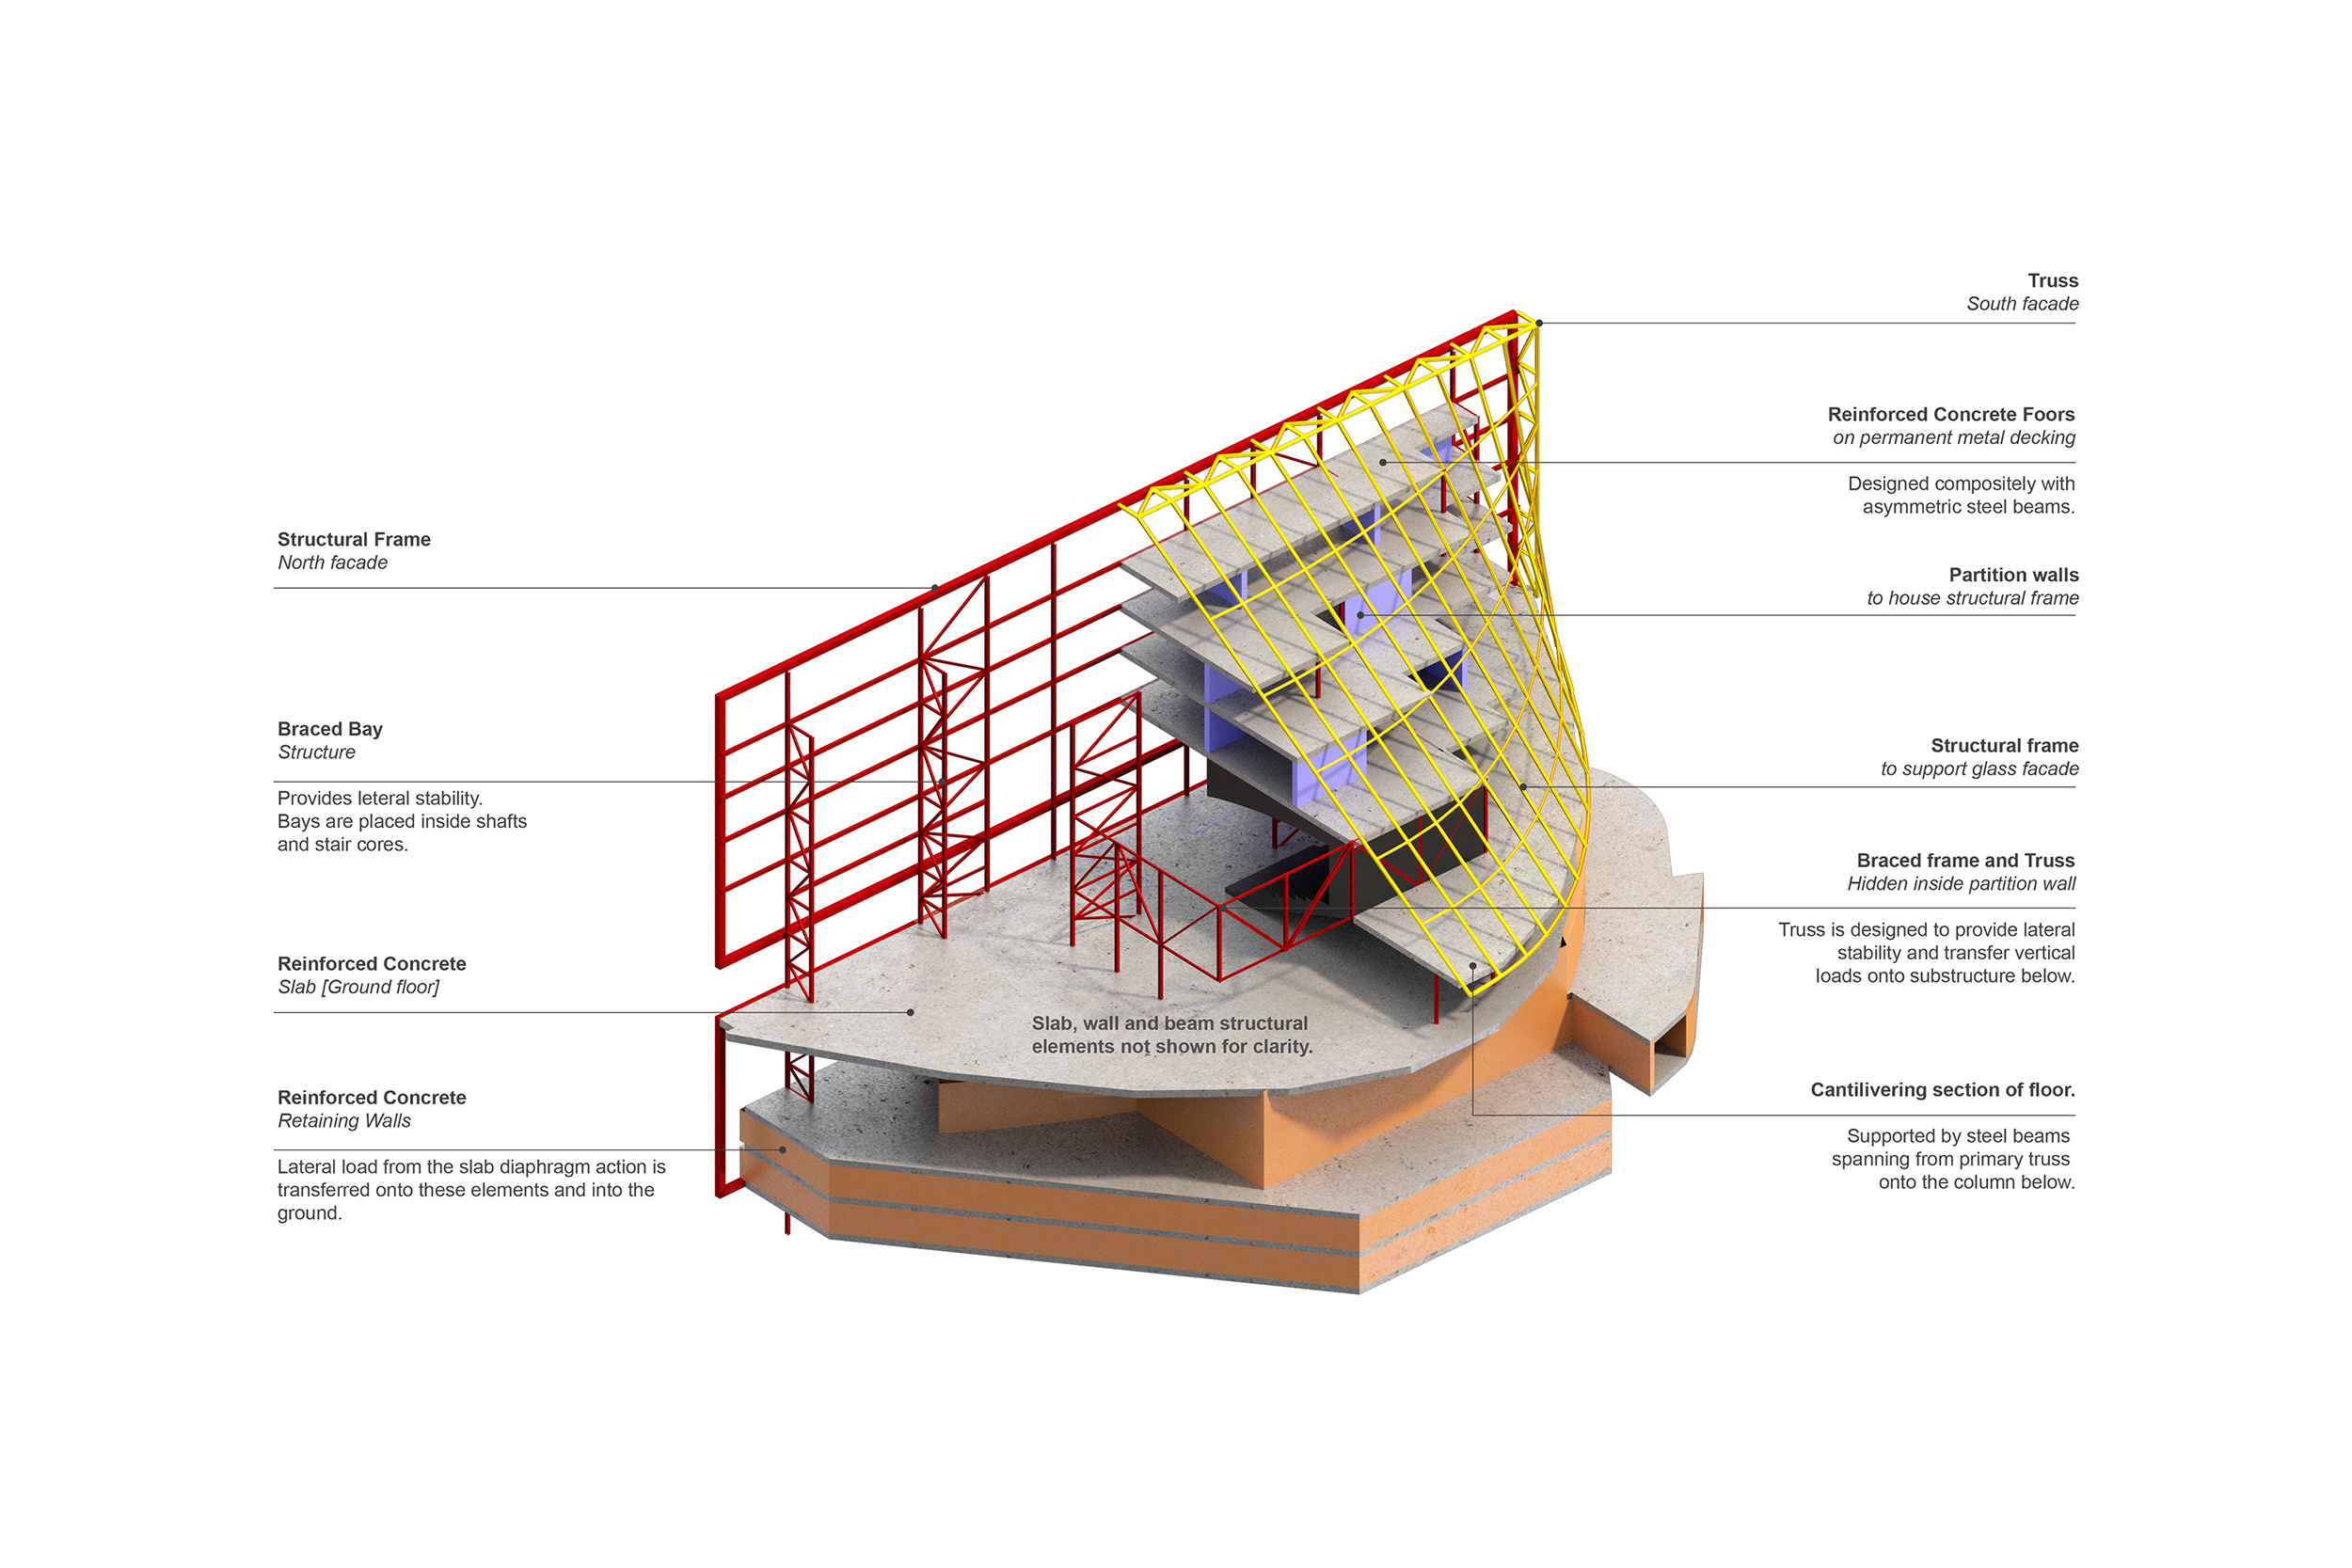 Creative Play Supporting Facility - Architect Ivane Ksnelashvili